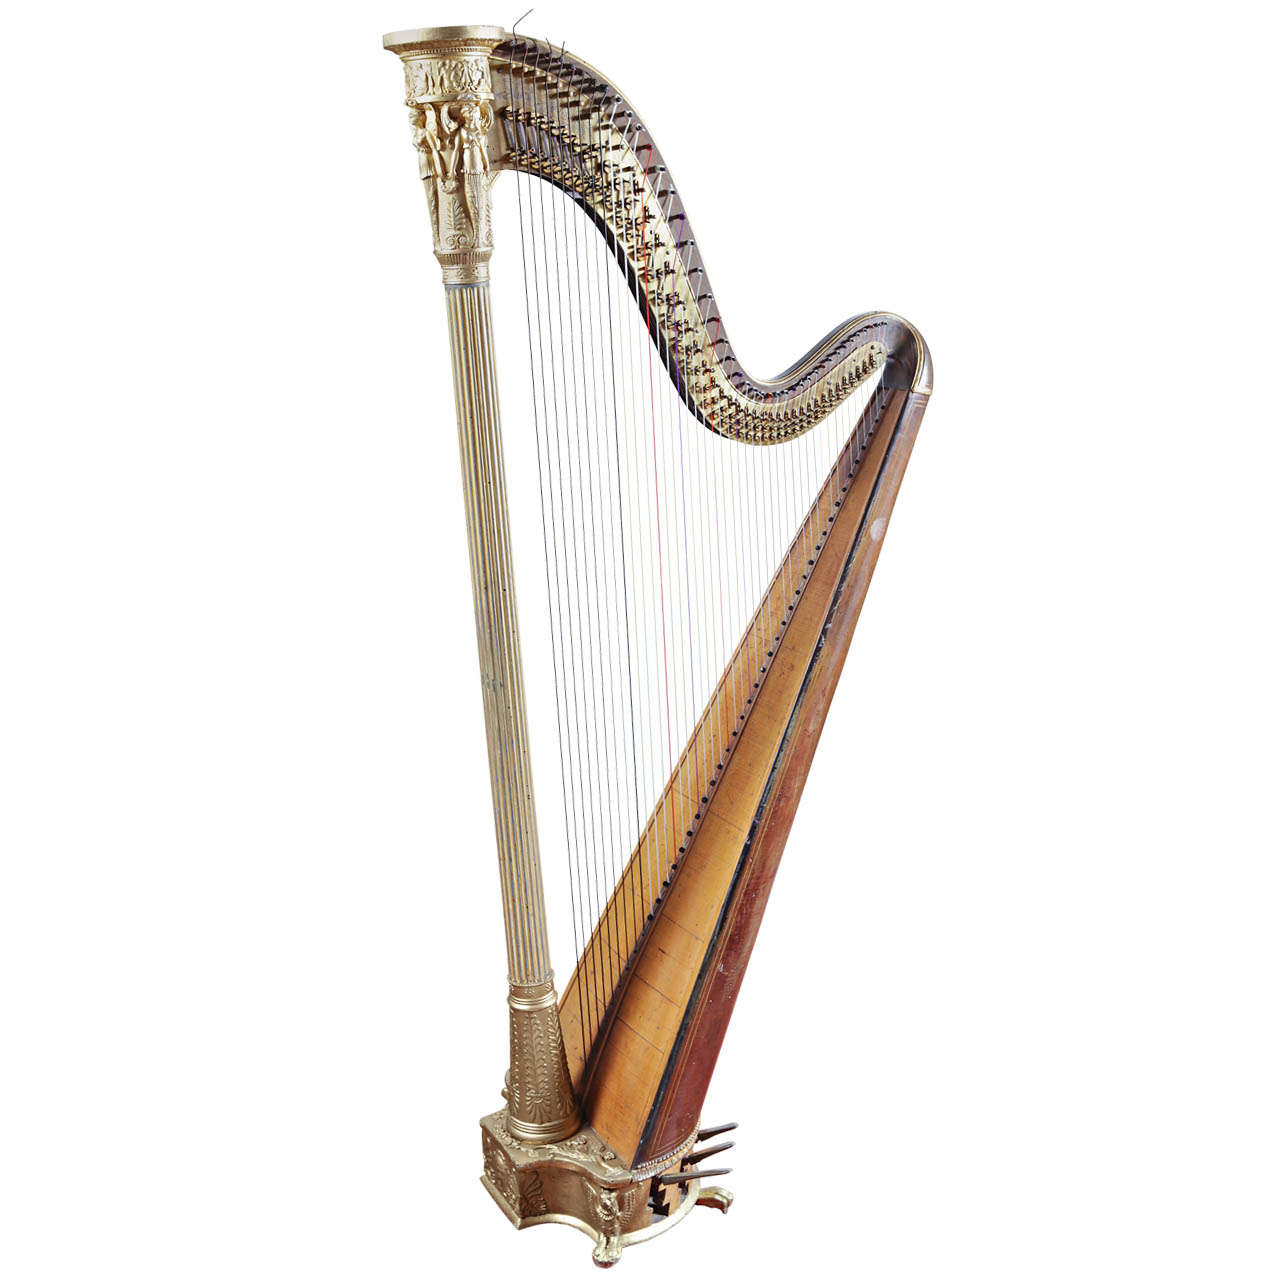 David Edward Hughes' Harp